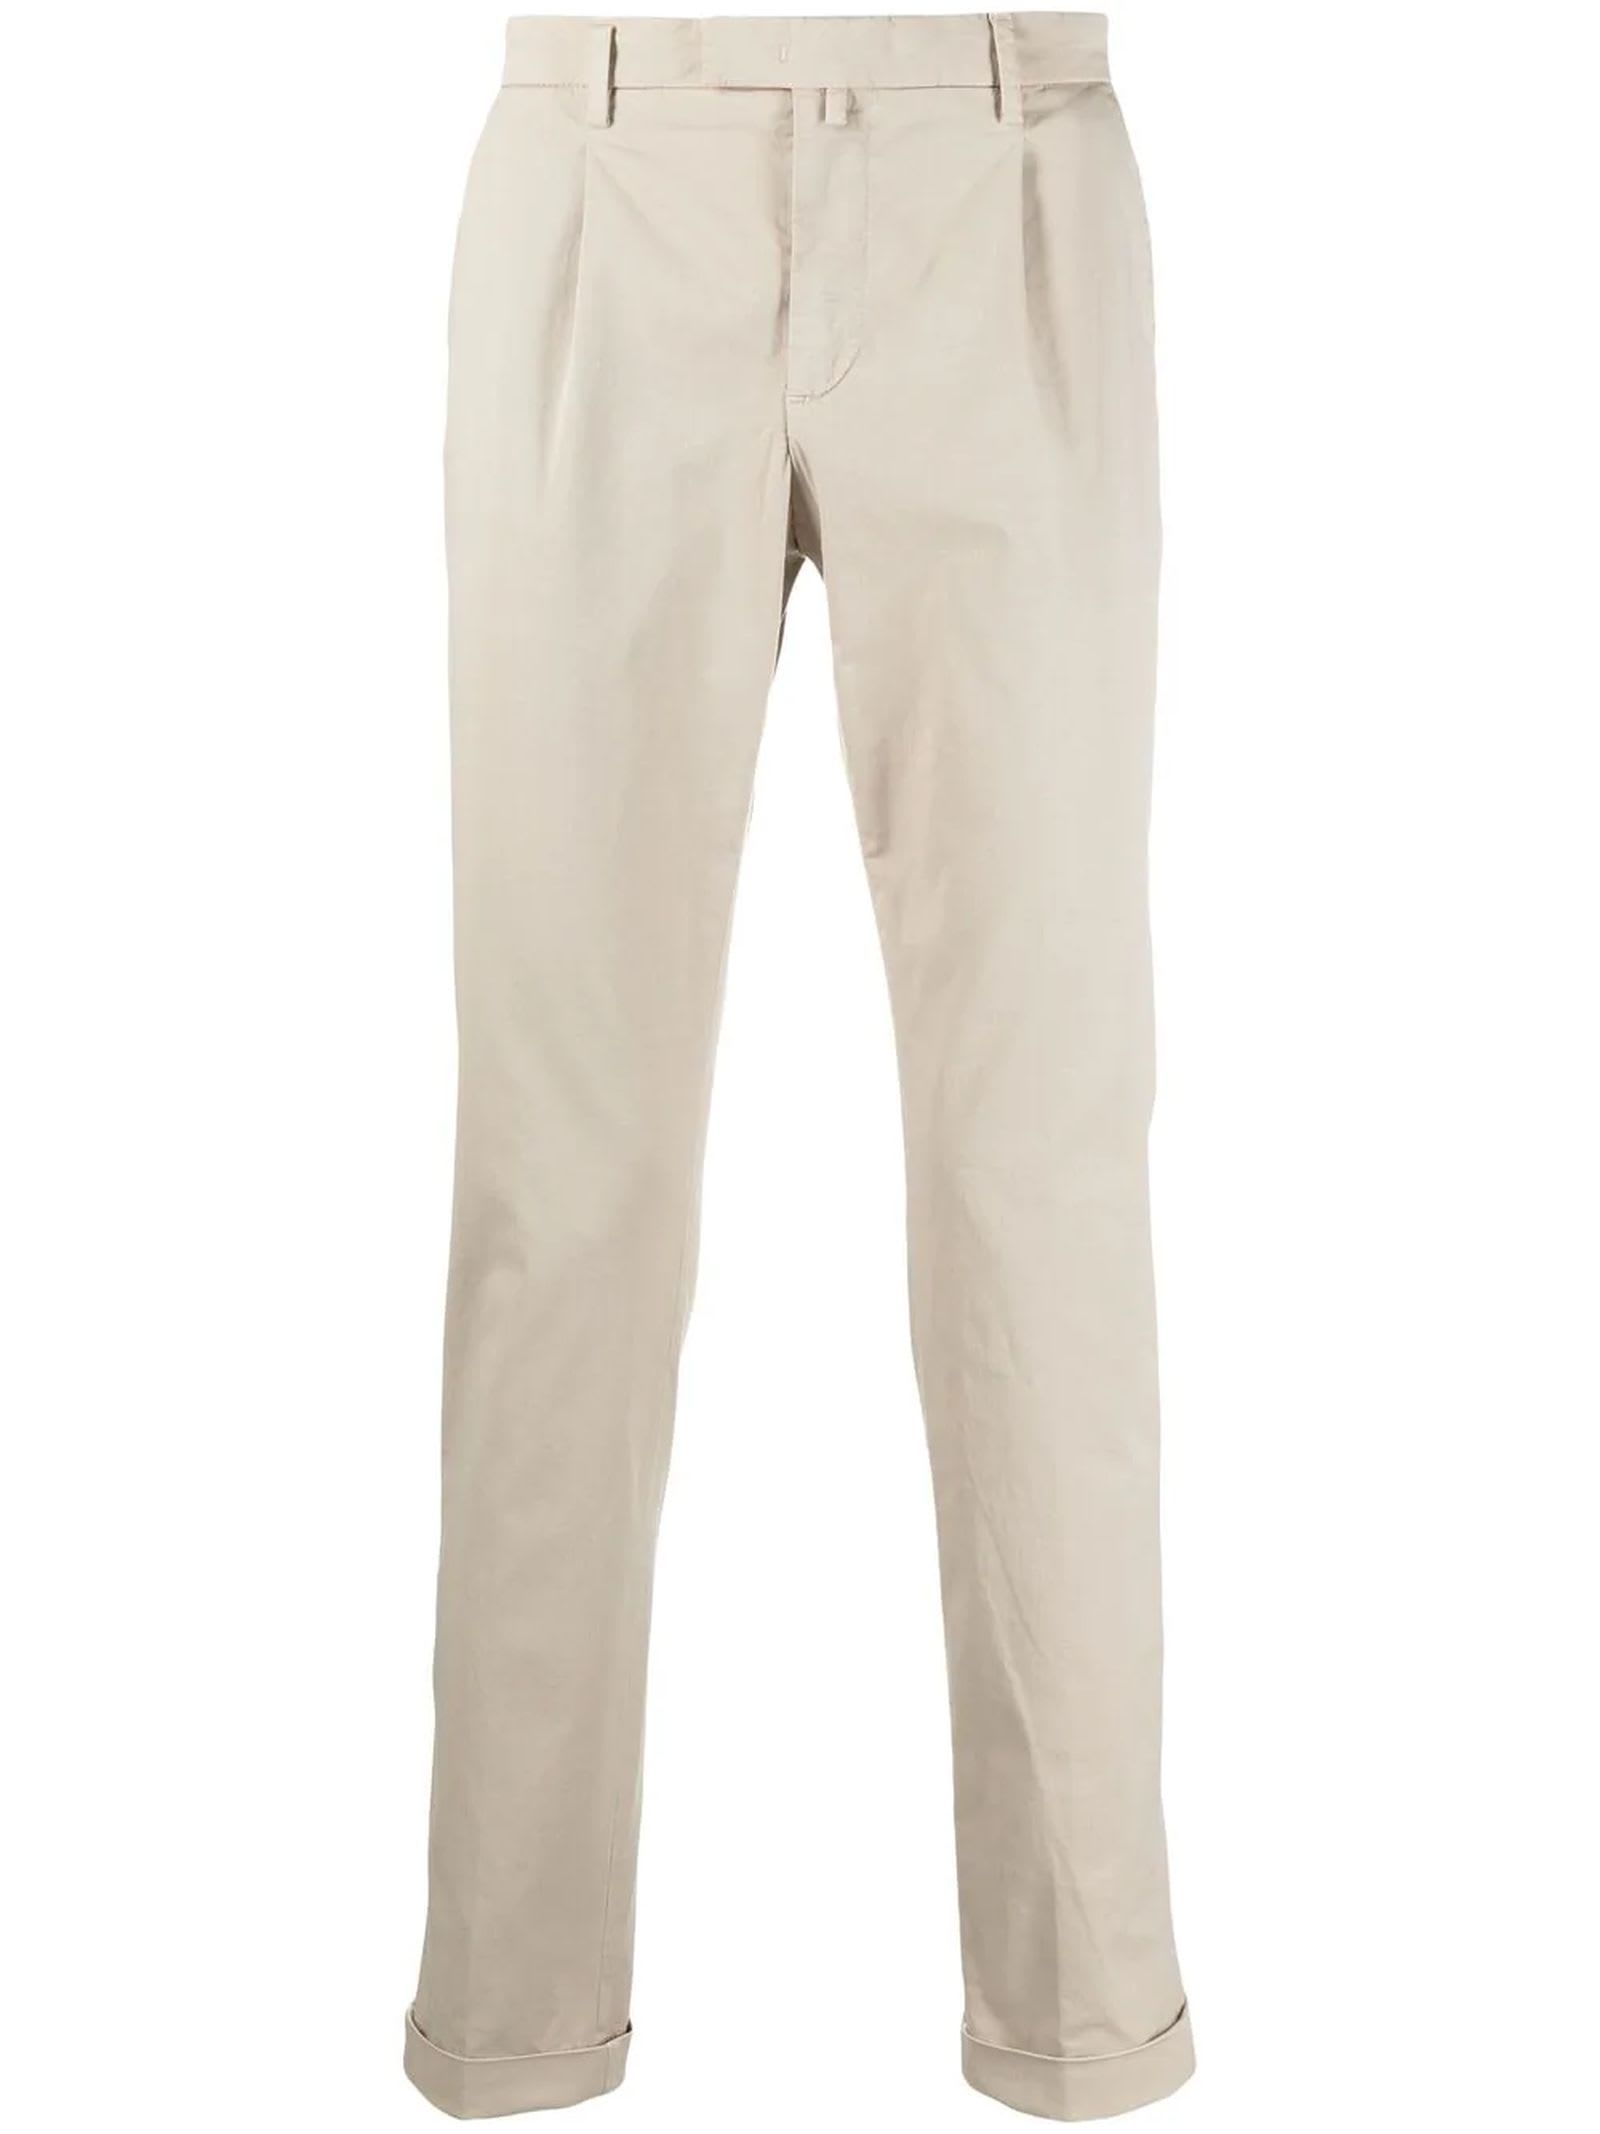 1949 Beige Stretch Cotton Chino Trousers